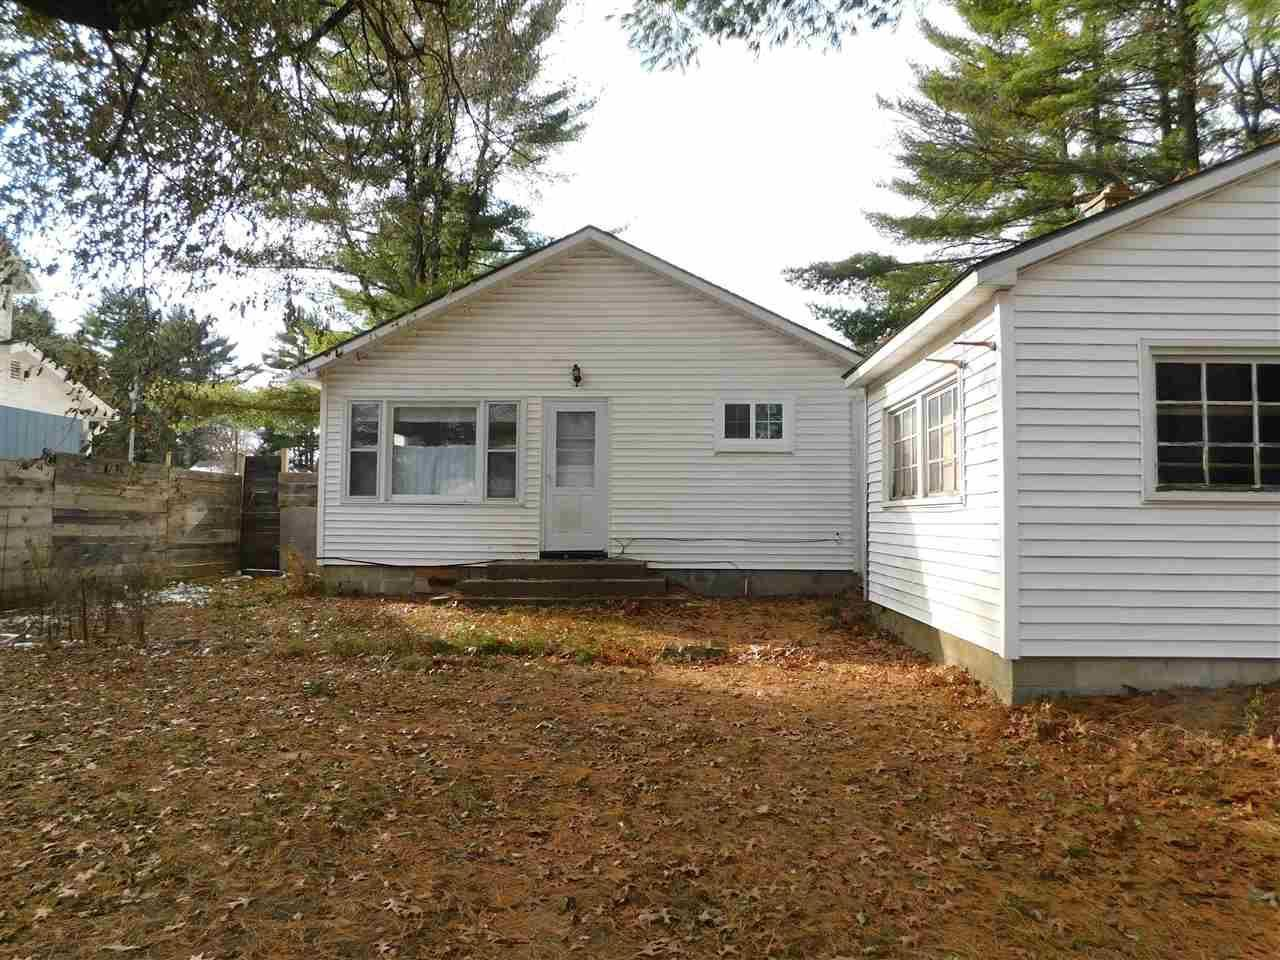 502 Quincy St, Friendship, WI 53934 - MLS#: 1873121